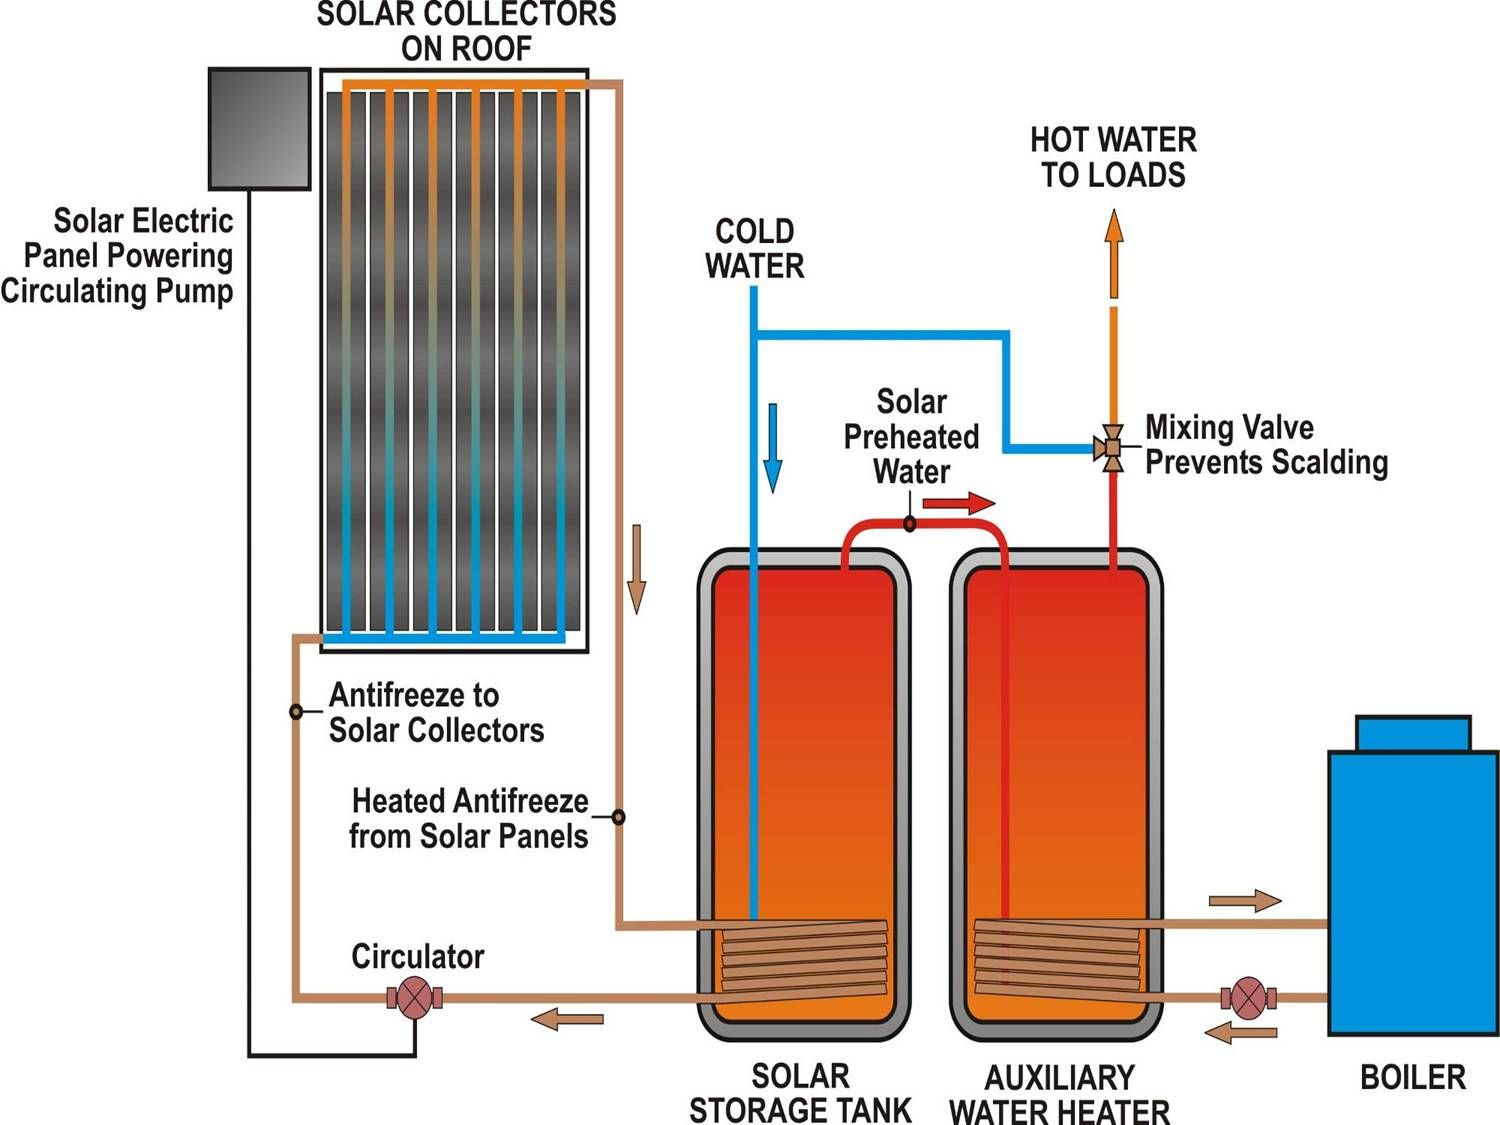 domestic solar hot water diagram offthegrid solar water heating wiring diagram aquaponics diy water heater vw fuel pump heater [ 1500 x 1125 Pixel ]